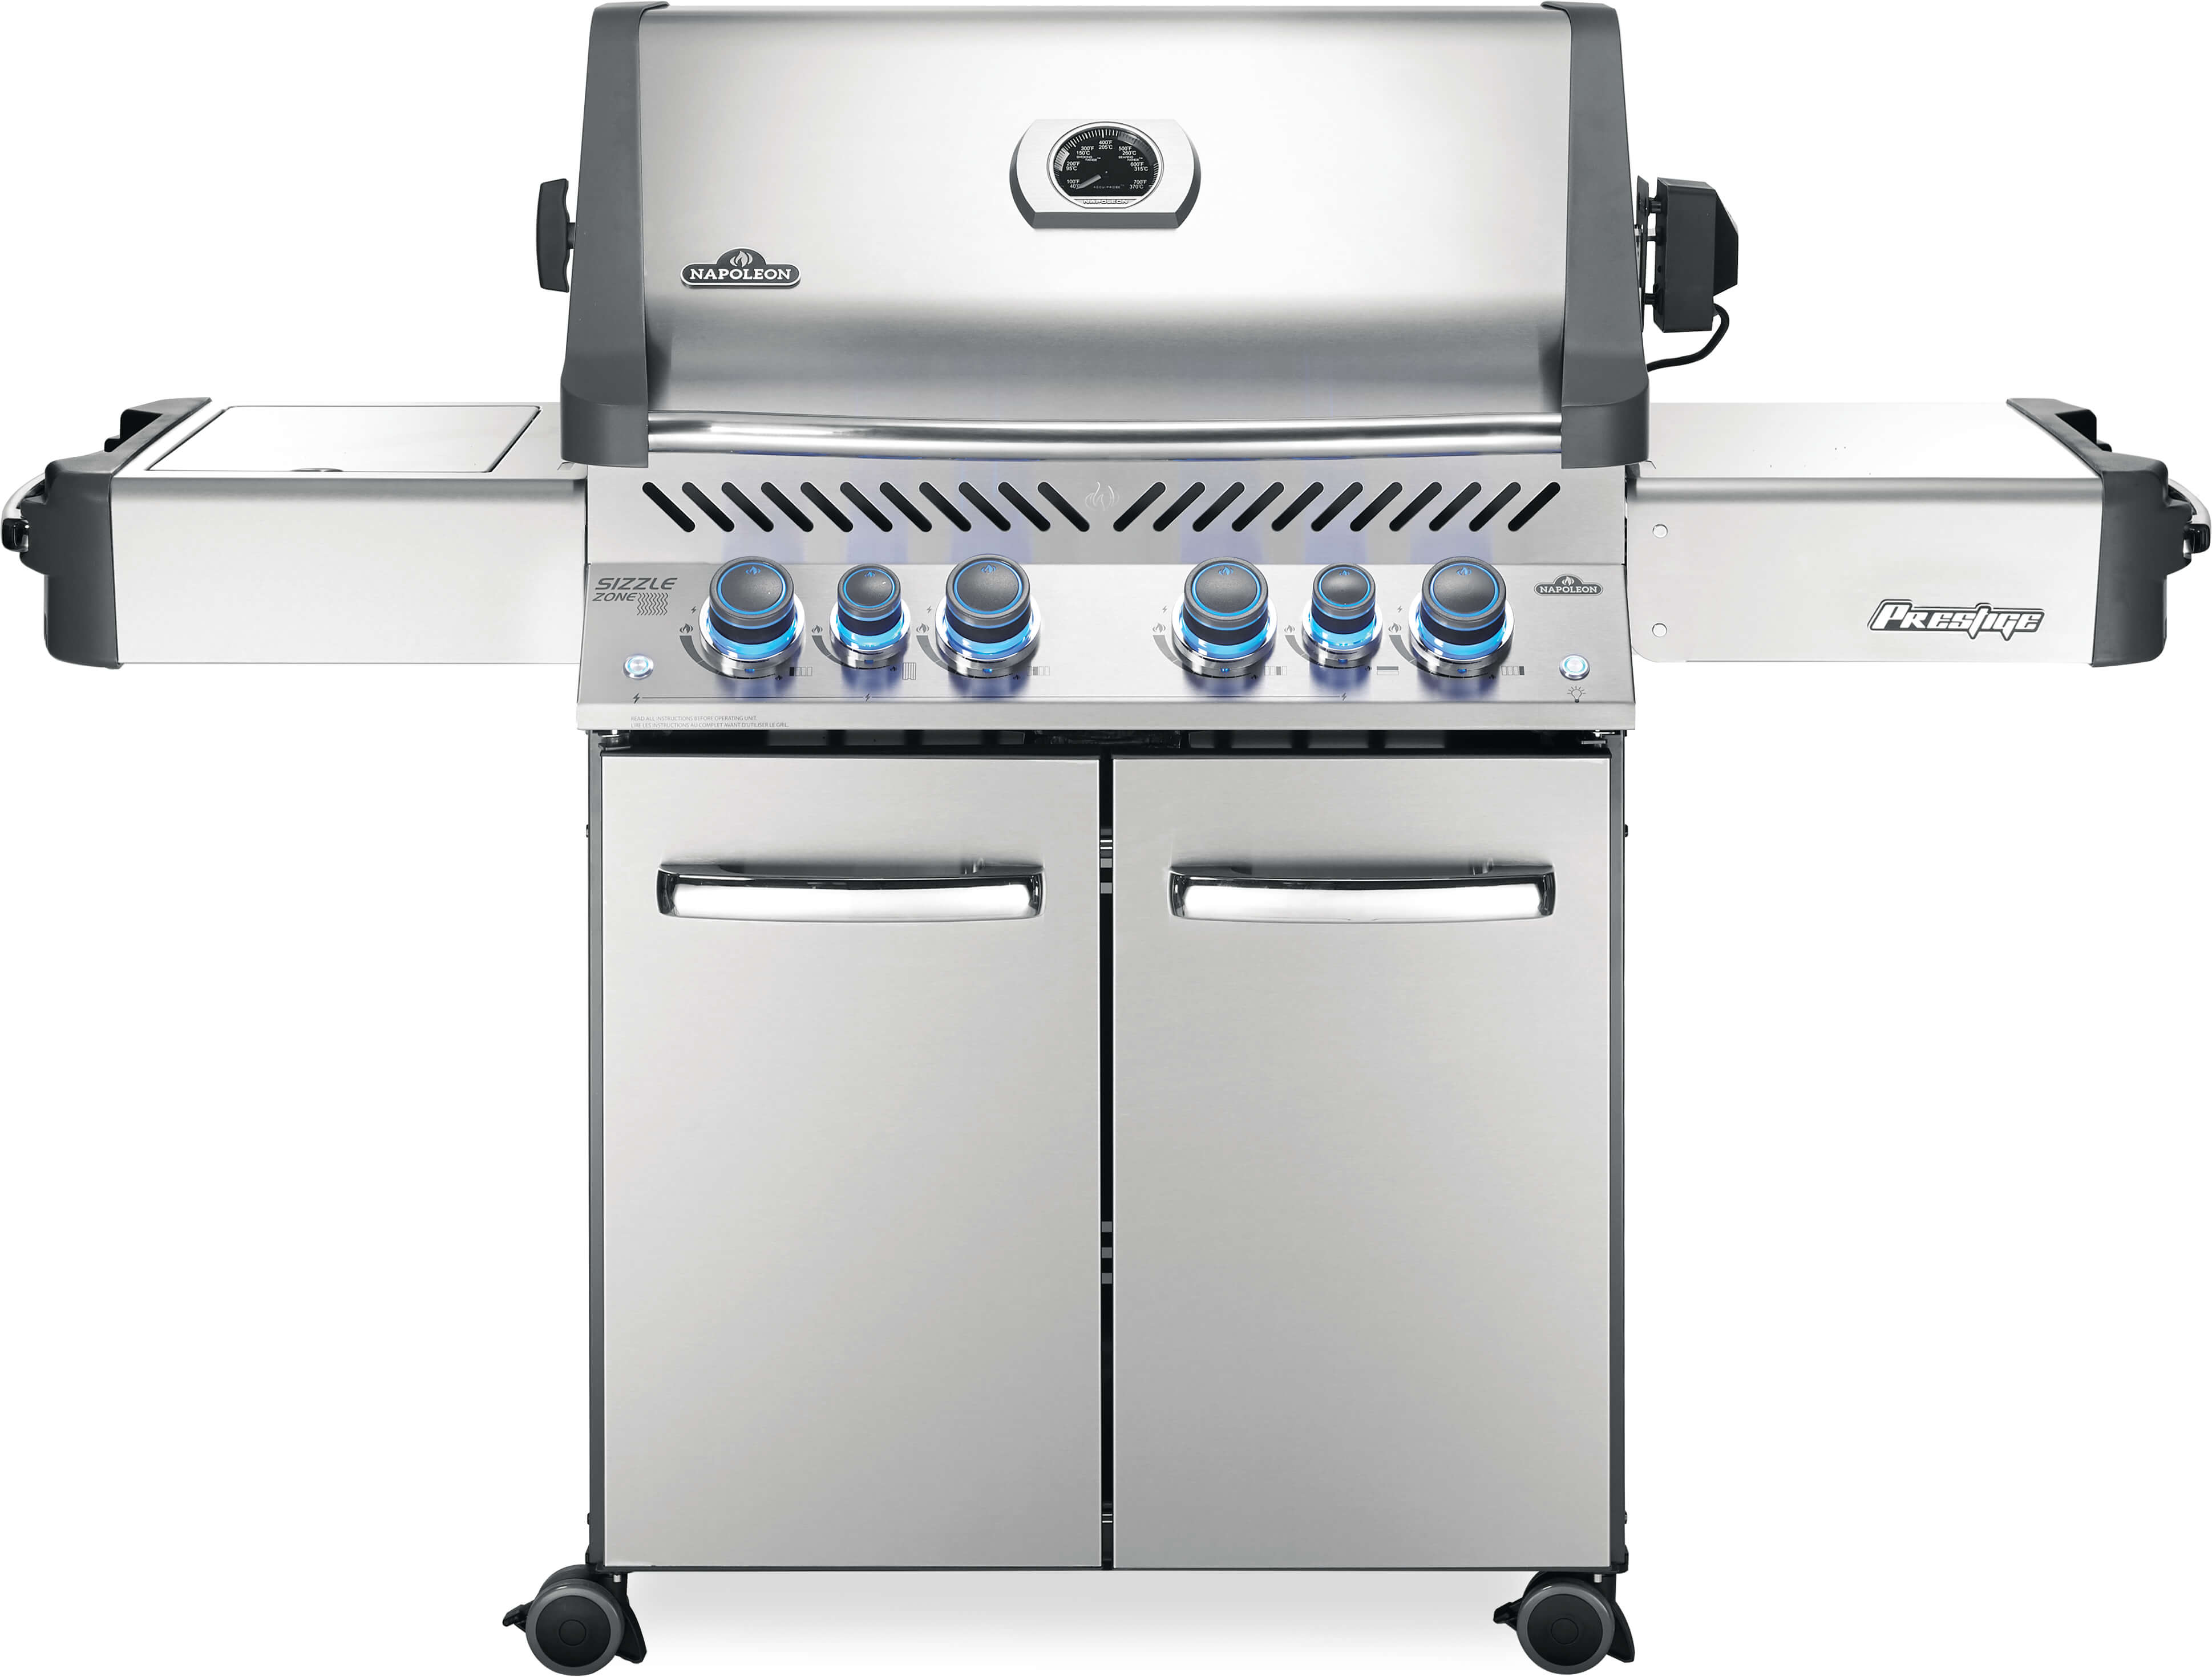 Prestige® 500 Natural Gas Grill with Infrared Side and Rear Burners, Stainless Steel